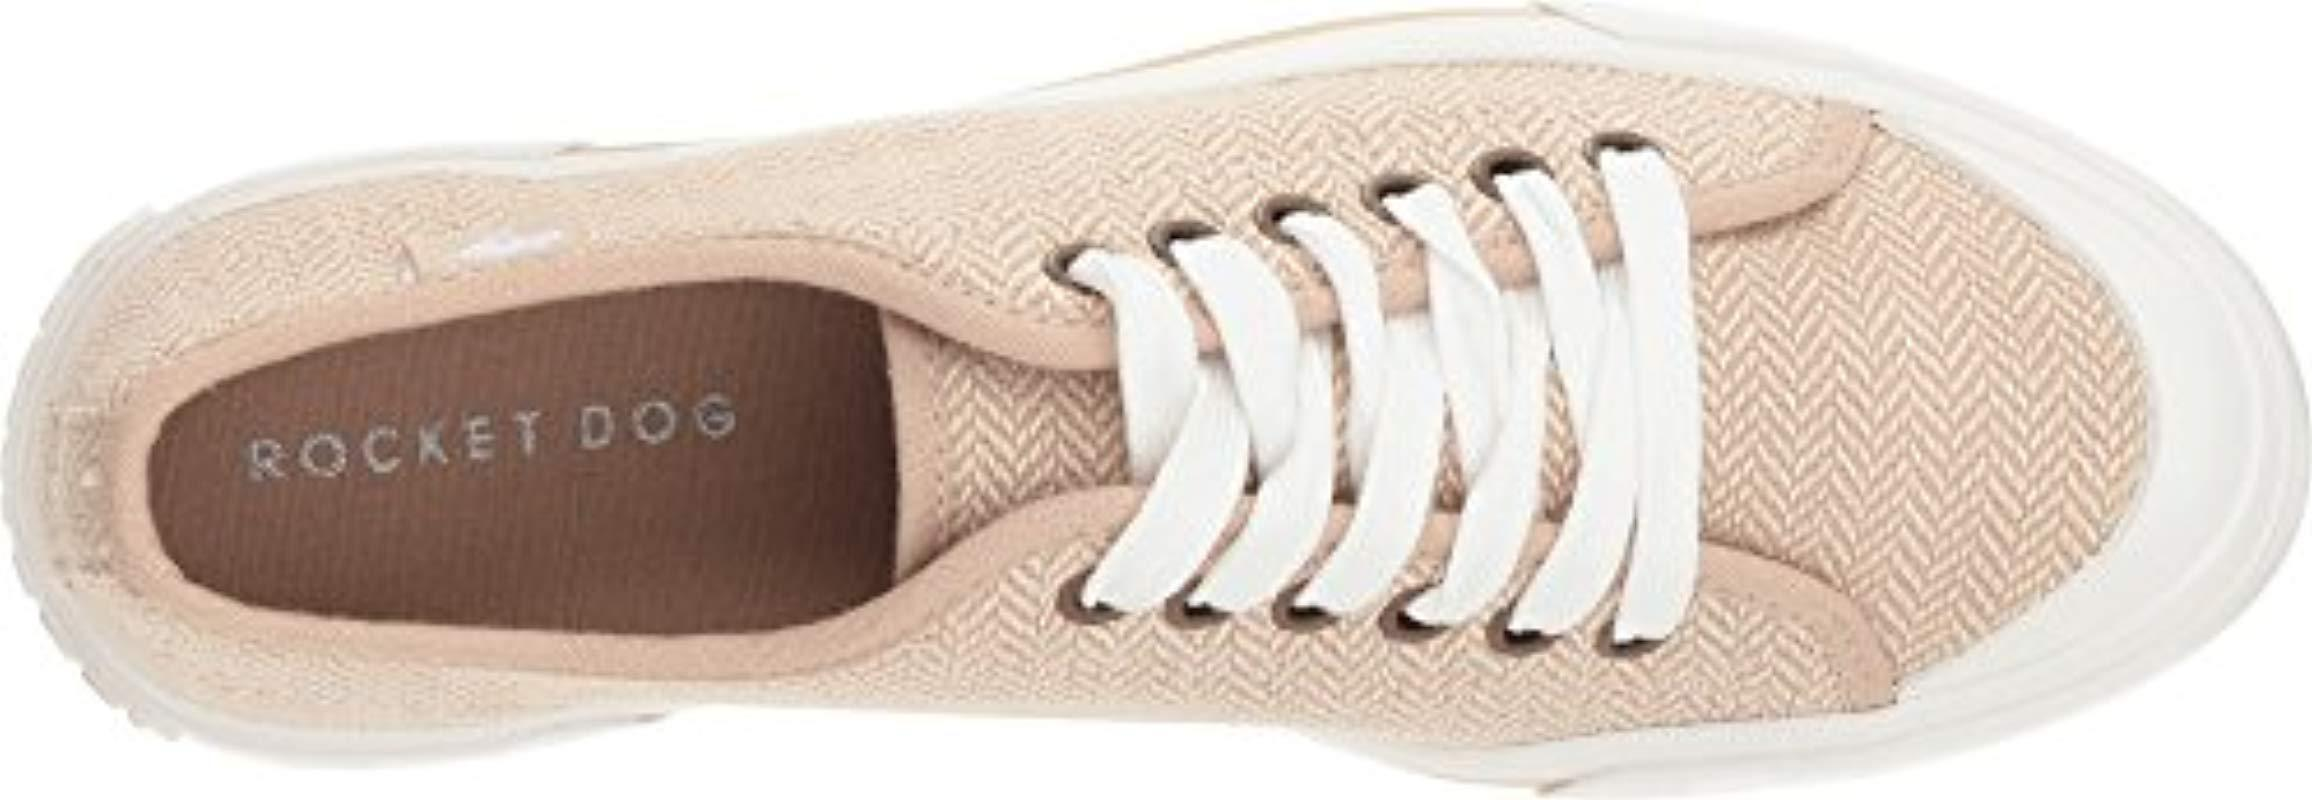 f9d047d87a6100 Lyst - Rocket Dog Jumpin Weekend Canvas Fashion Sneaker in Natural